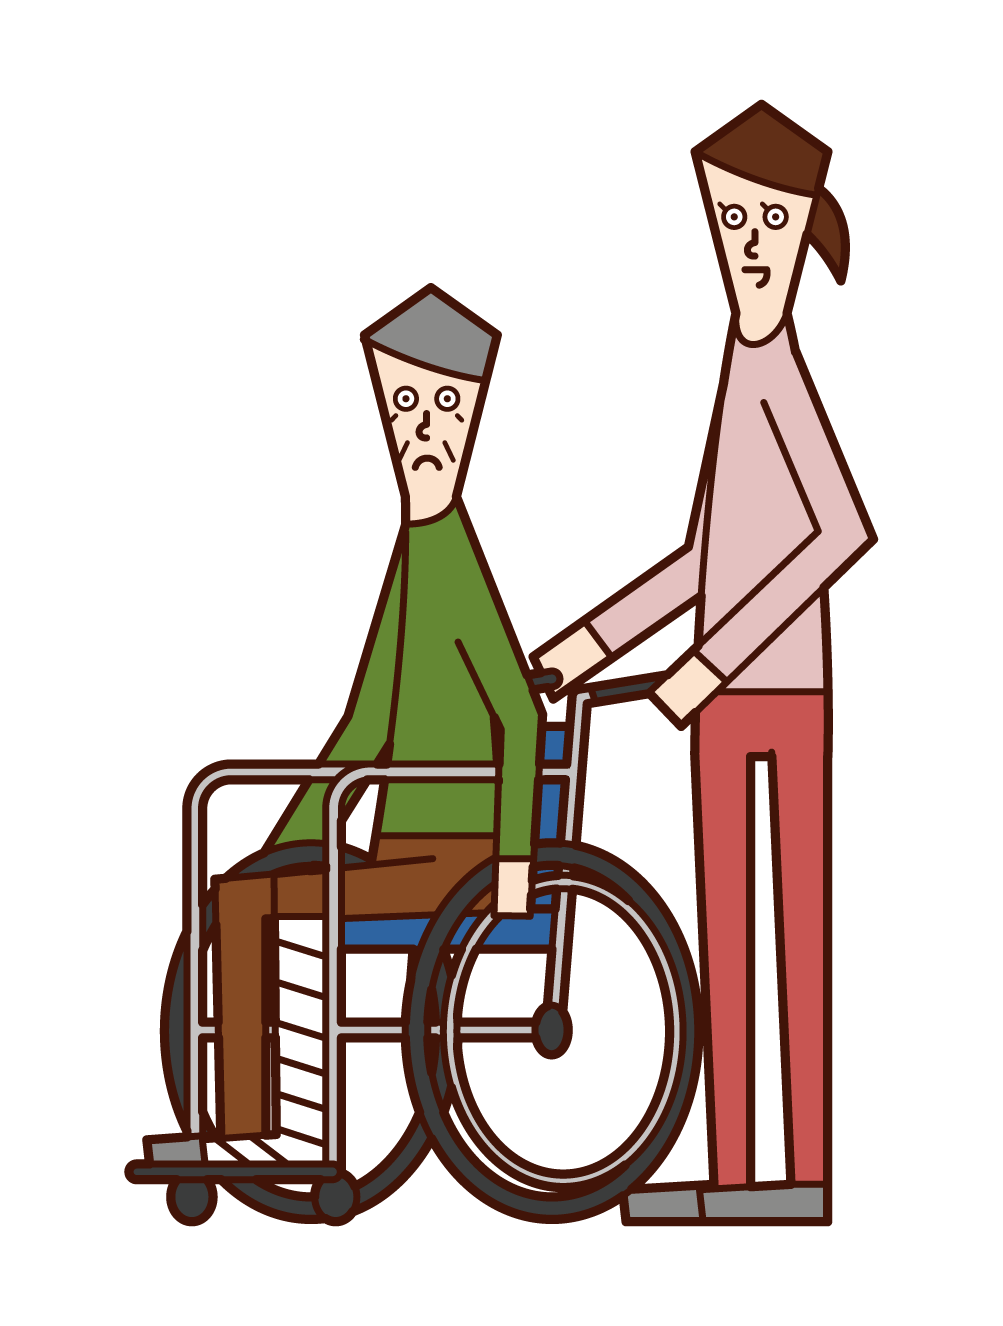 Illustration of an elderly man in a wheelchair with a broken leg